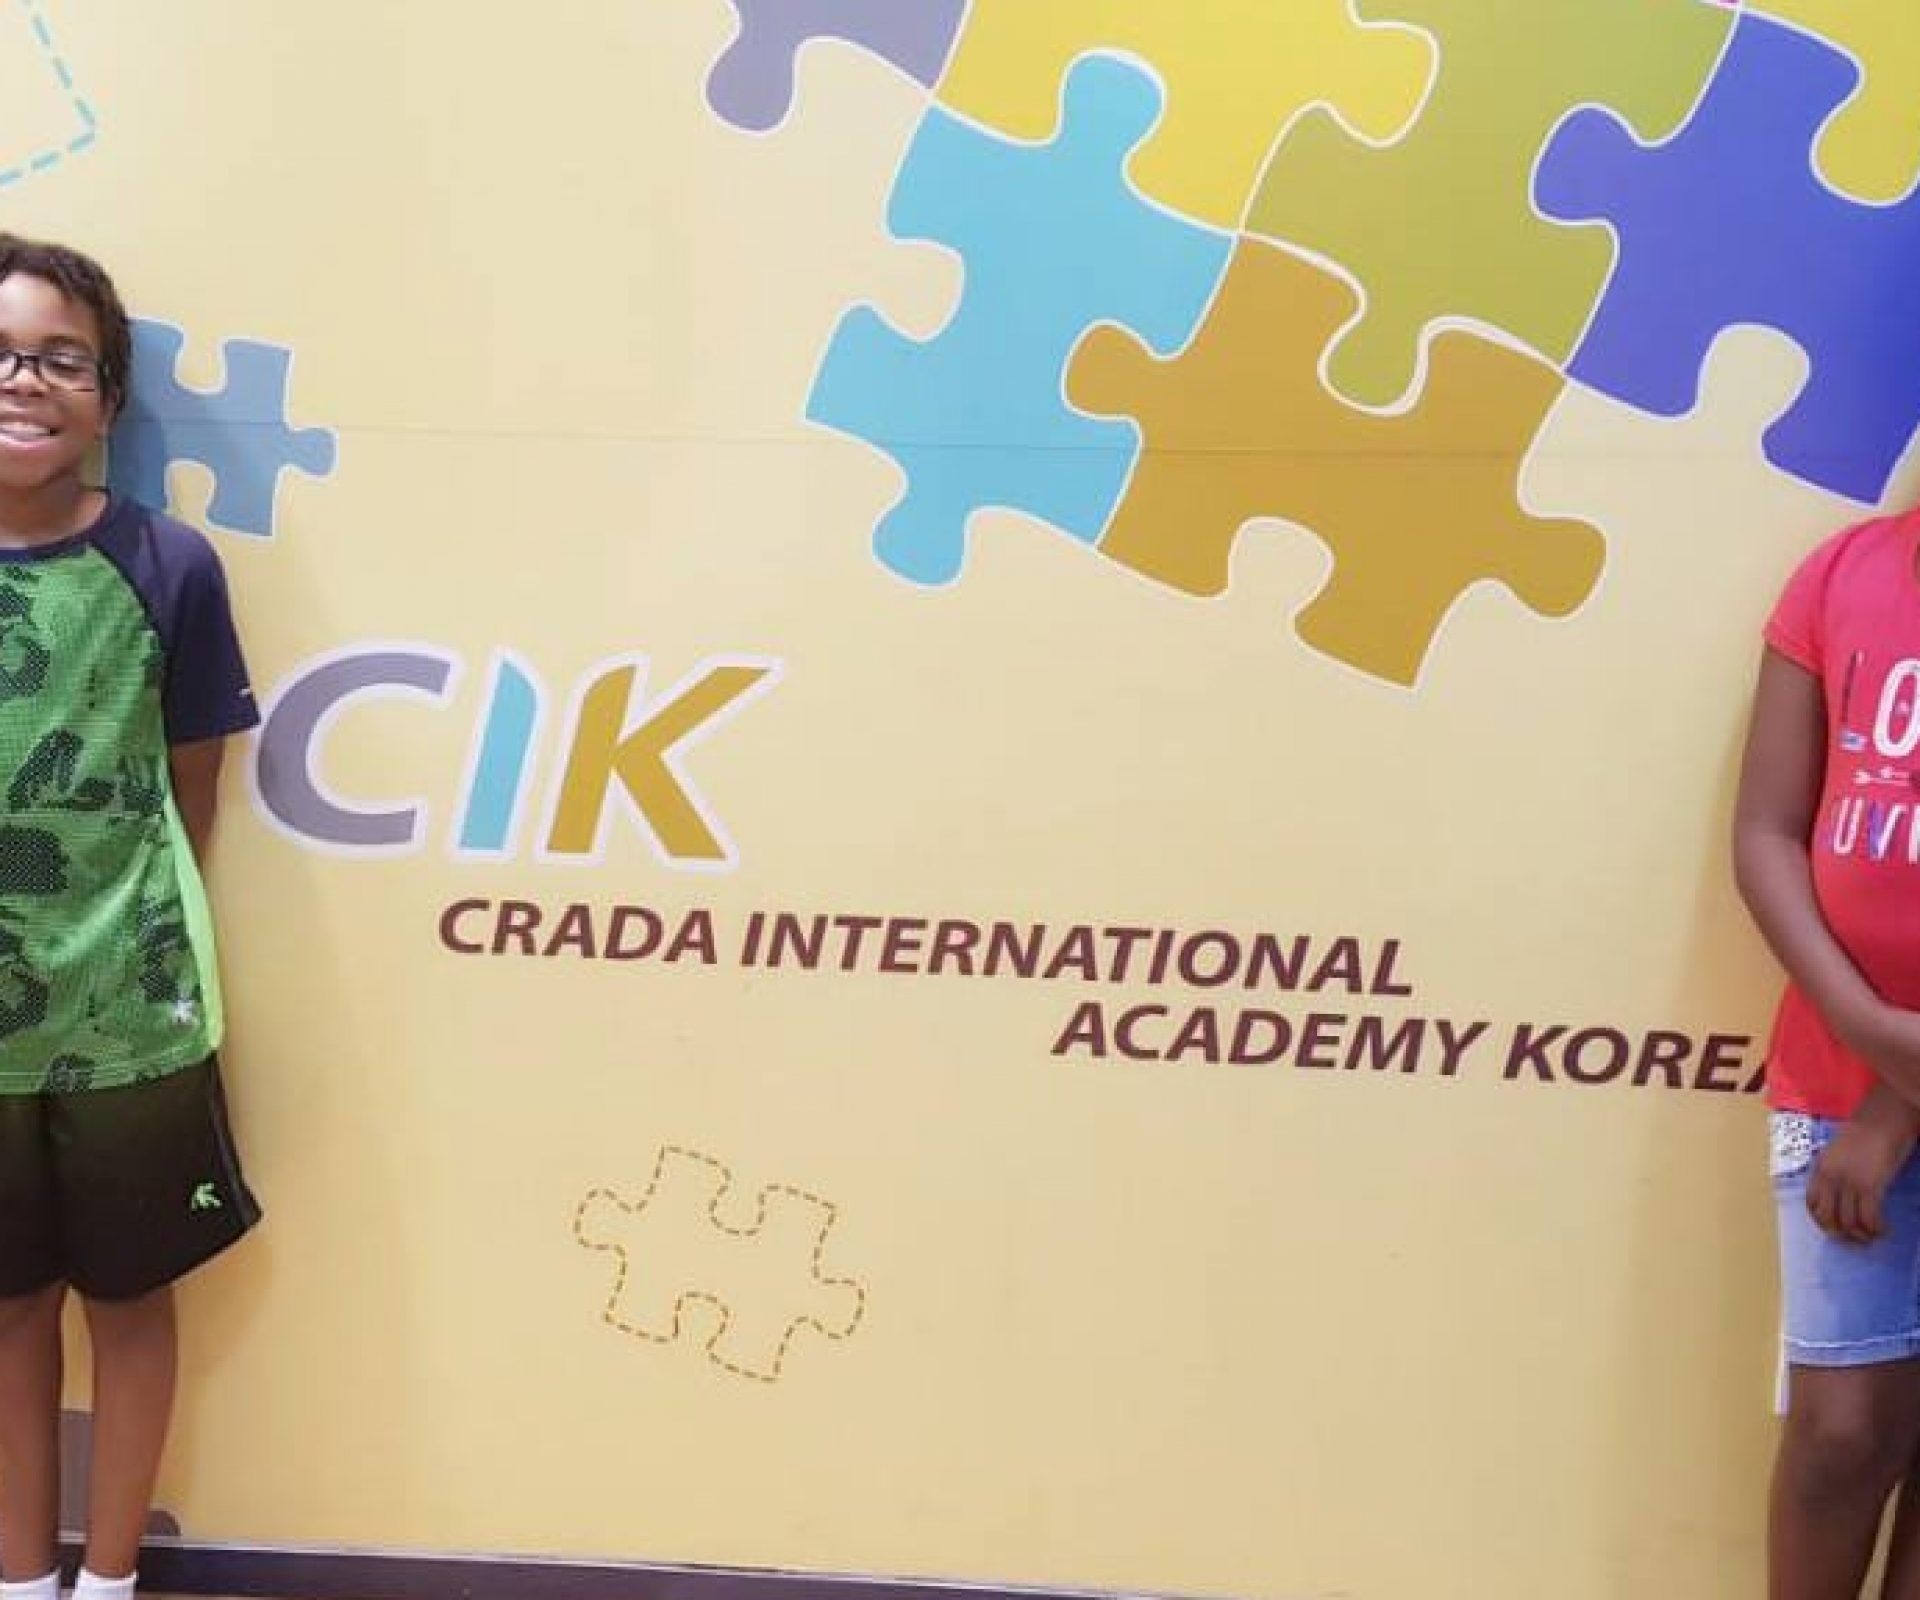 CIK CRADA International | Gangnam-gu, Seoul